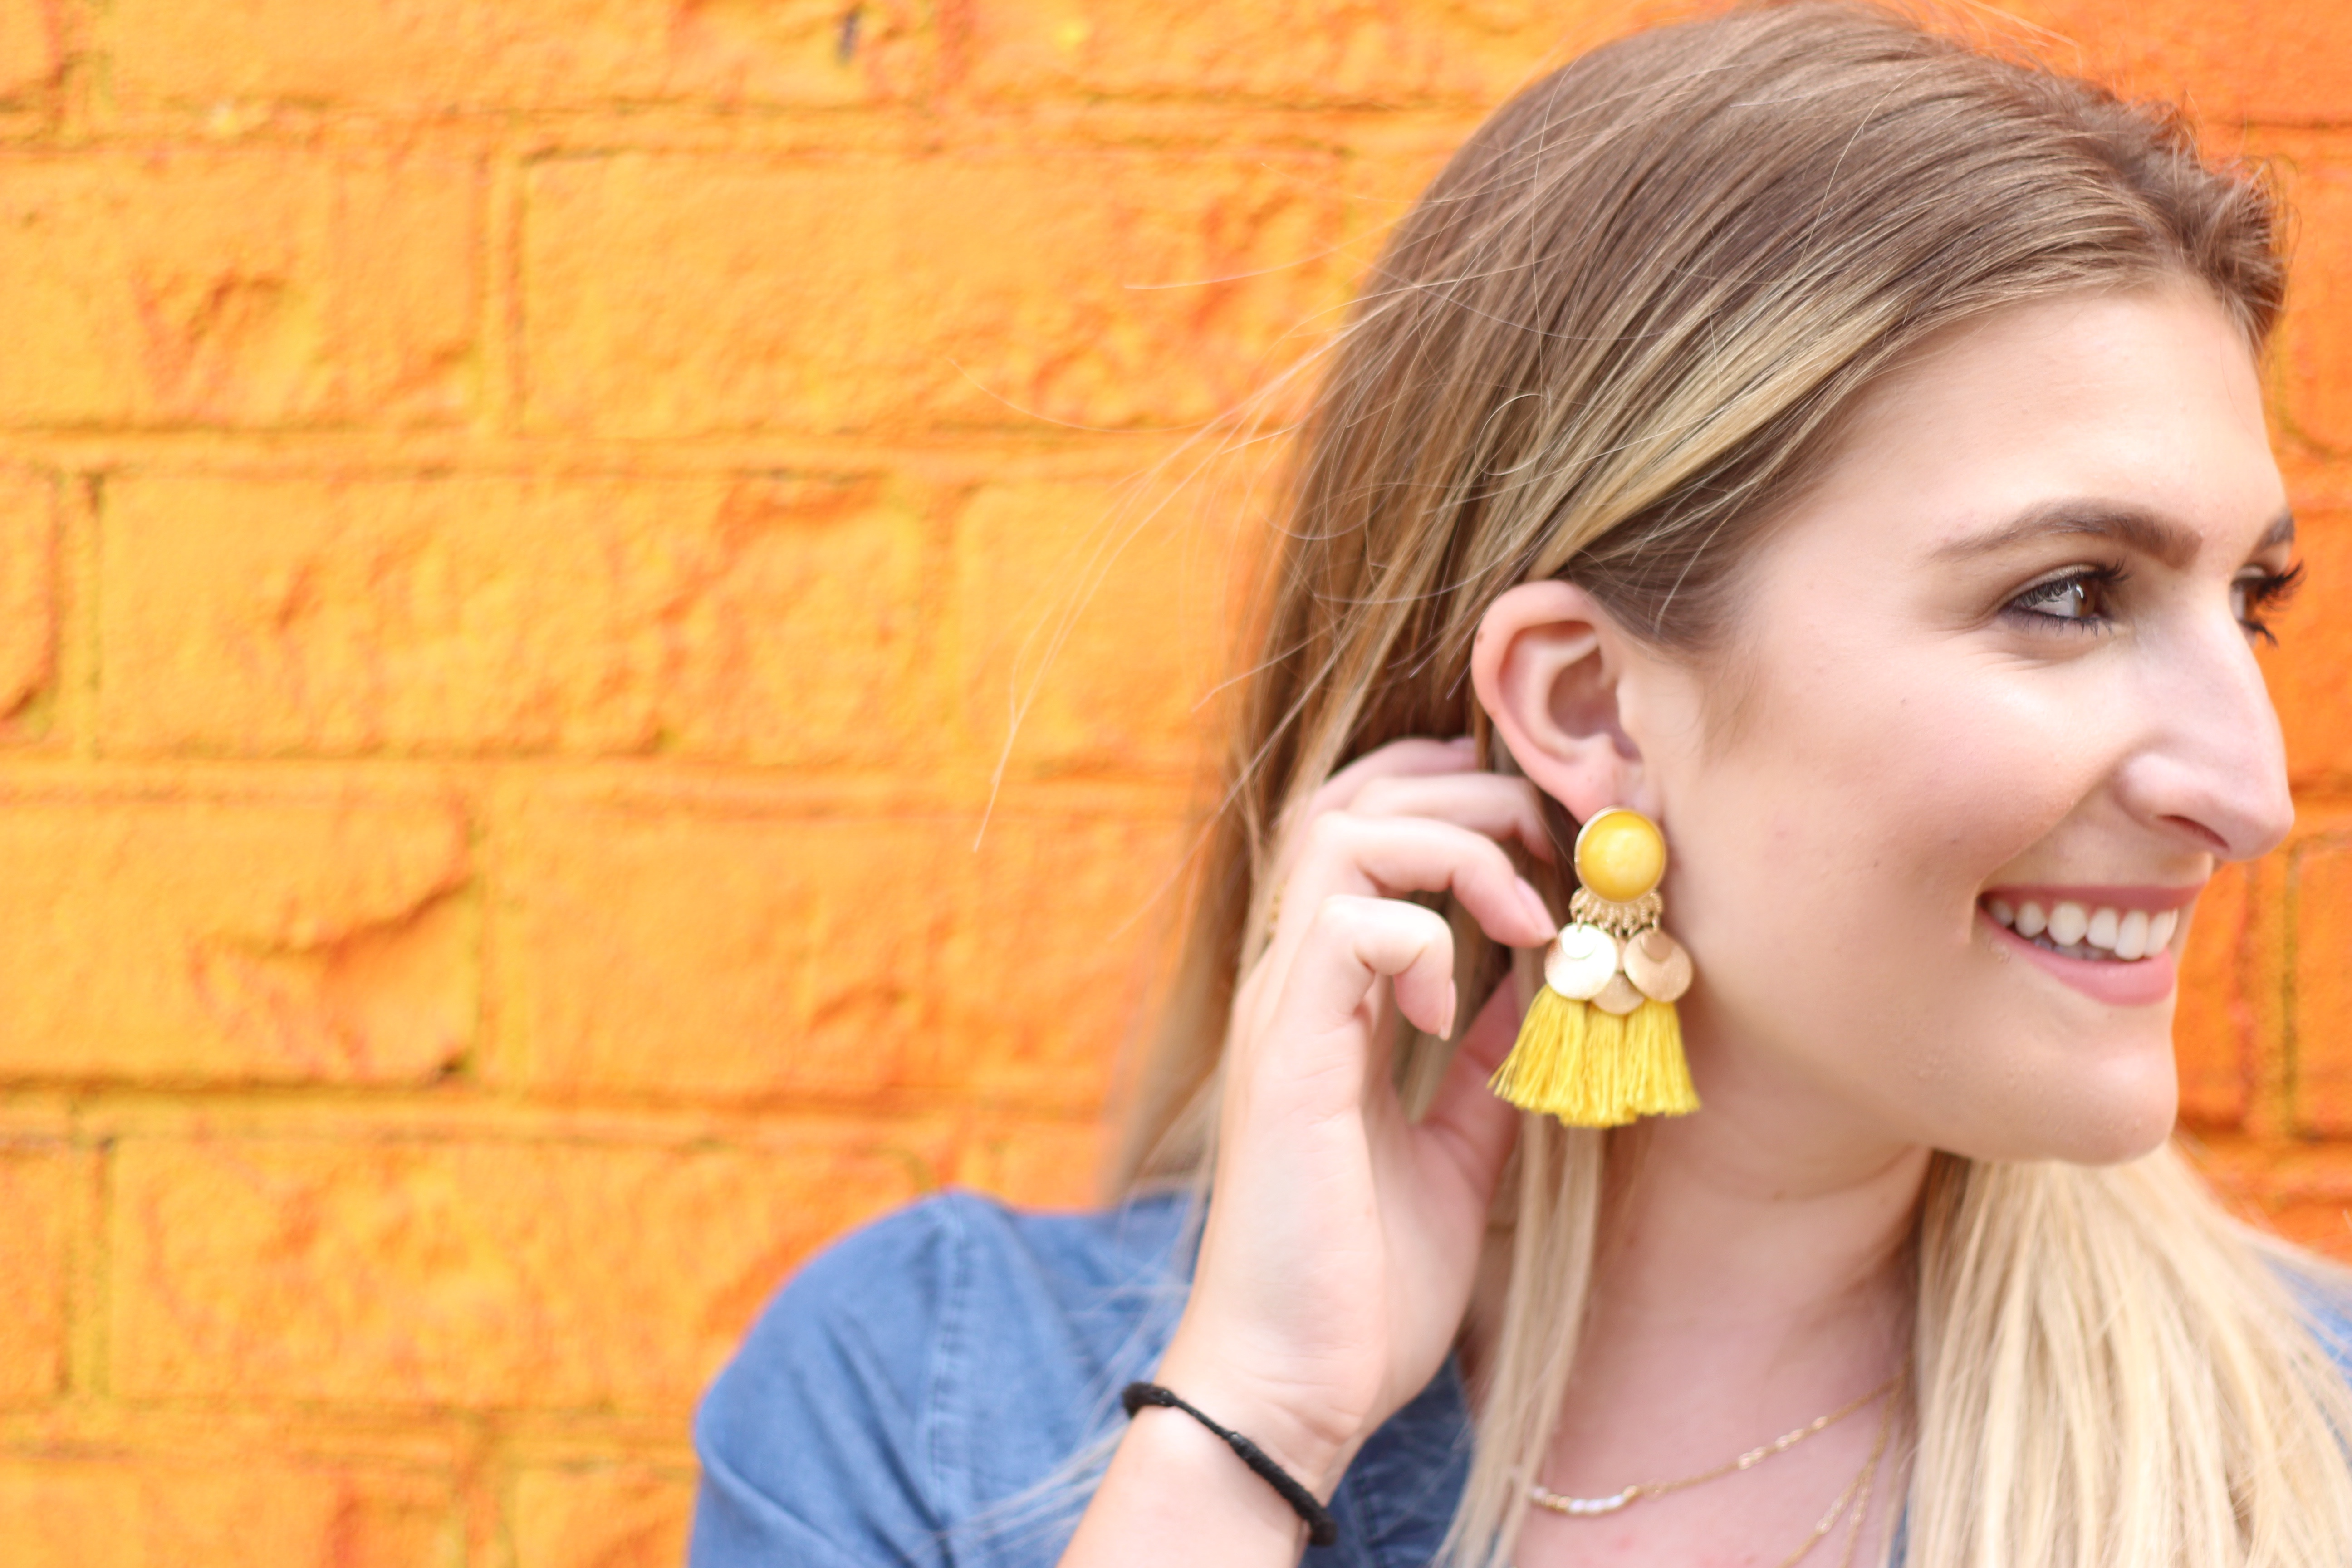 rainbow wall and summer earrings | Audrey Madison Stowe Blog - Rainbow Wall in Brooklyn by popular Texas travel blogger Audrey Madison Stowe